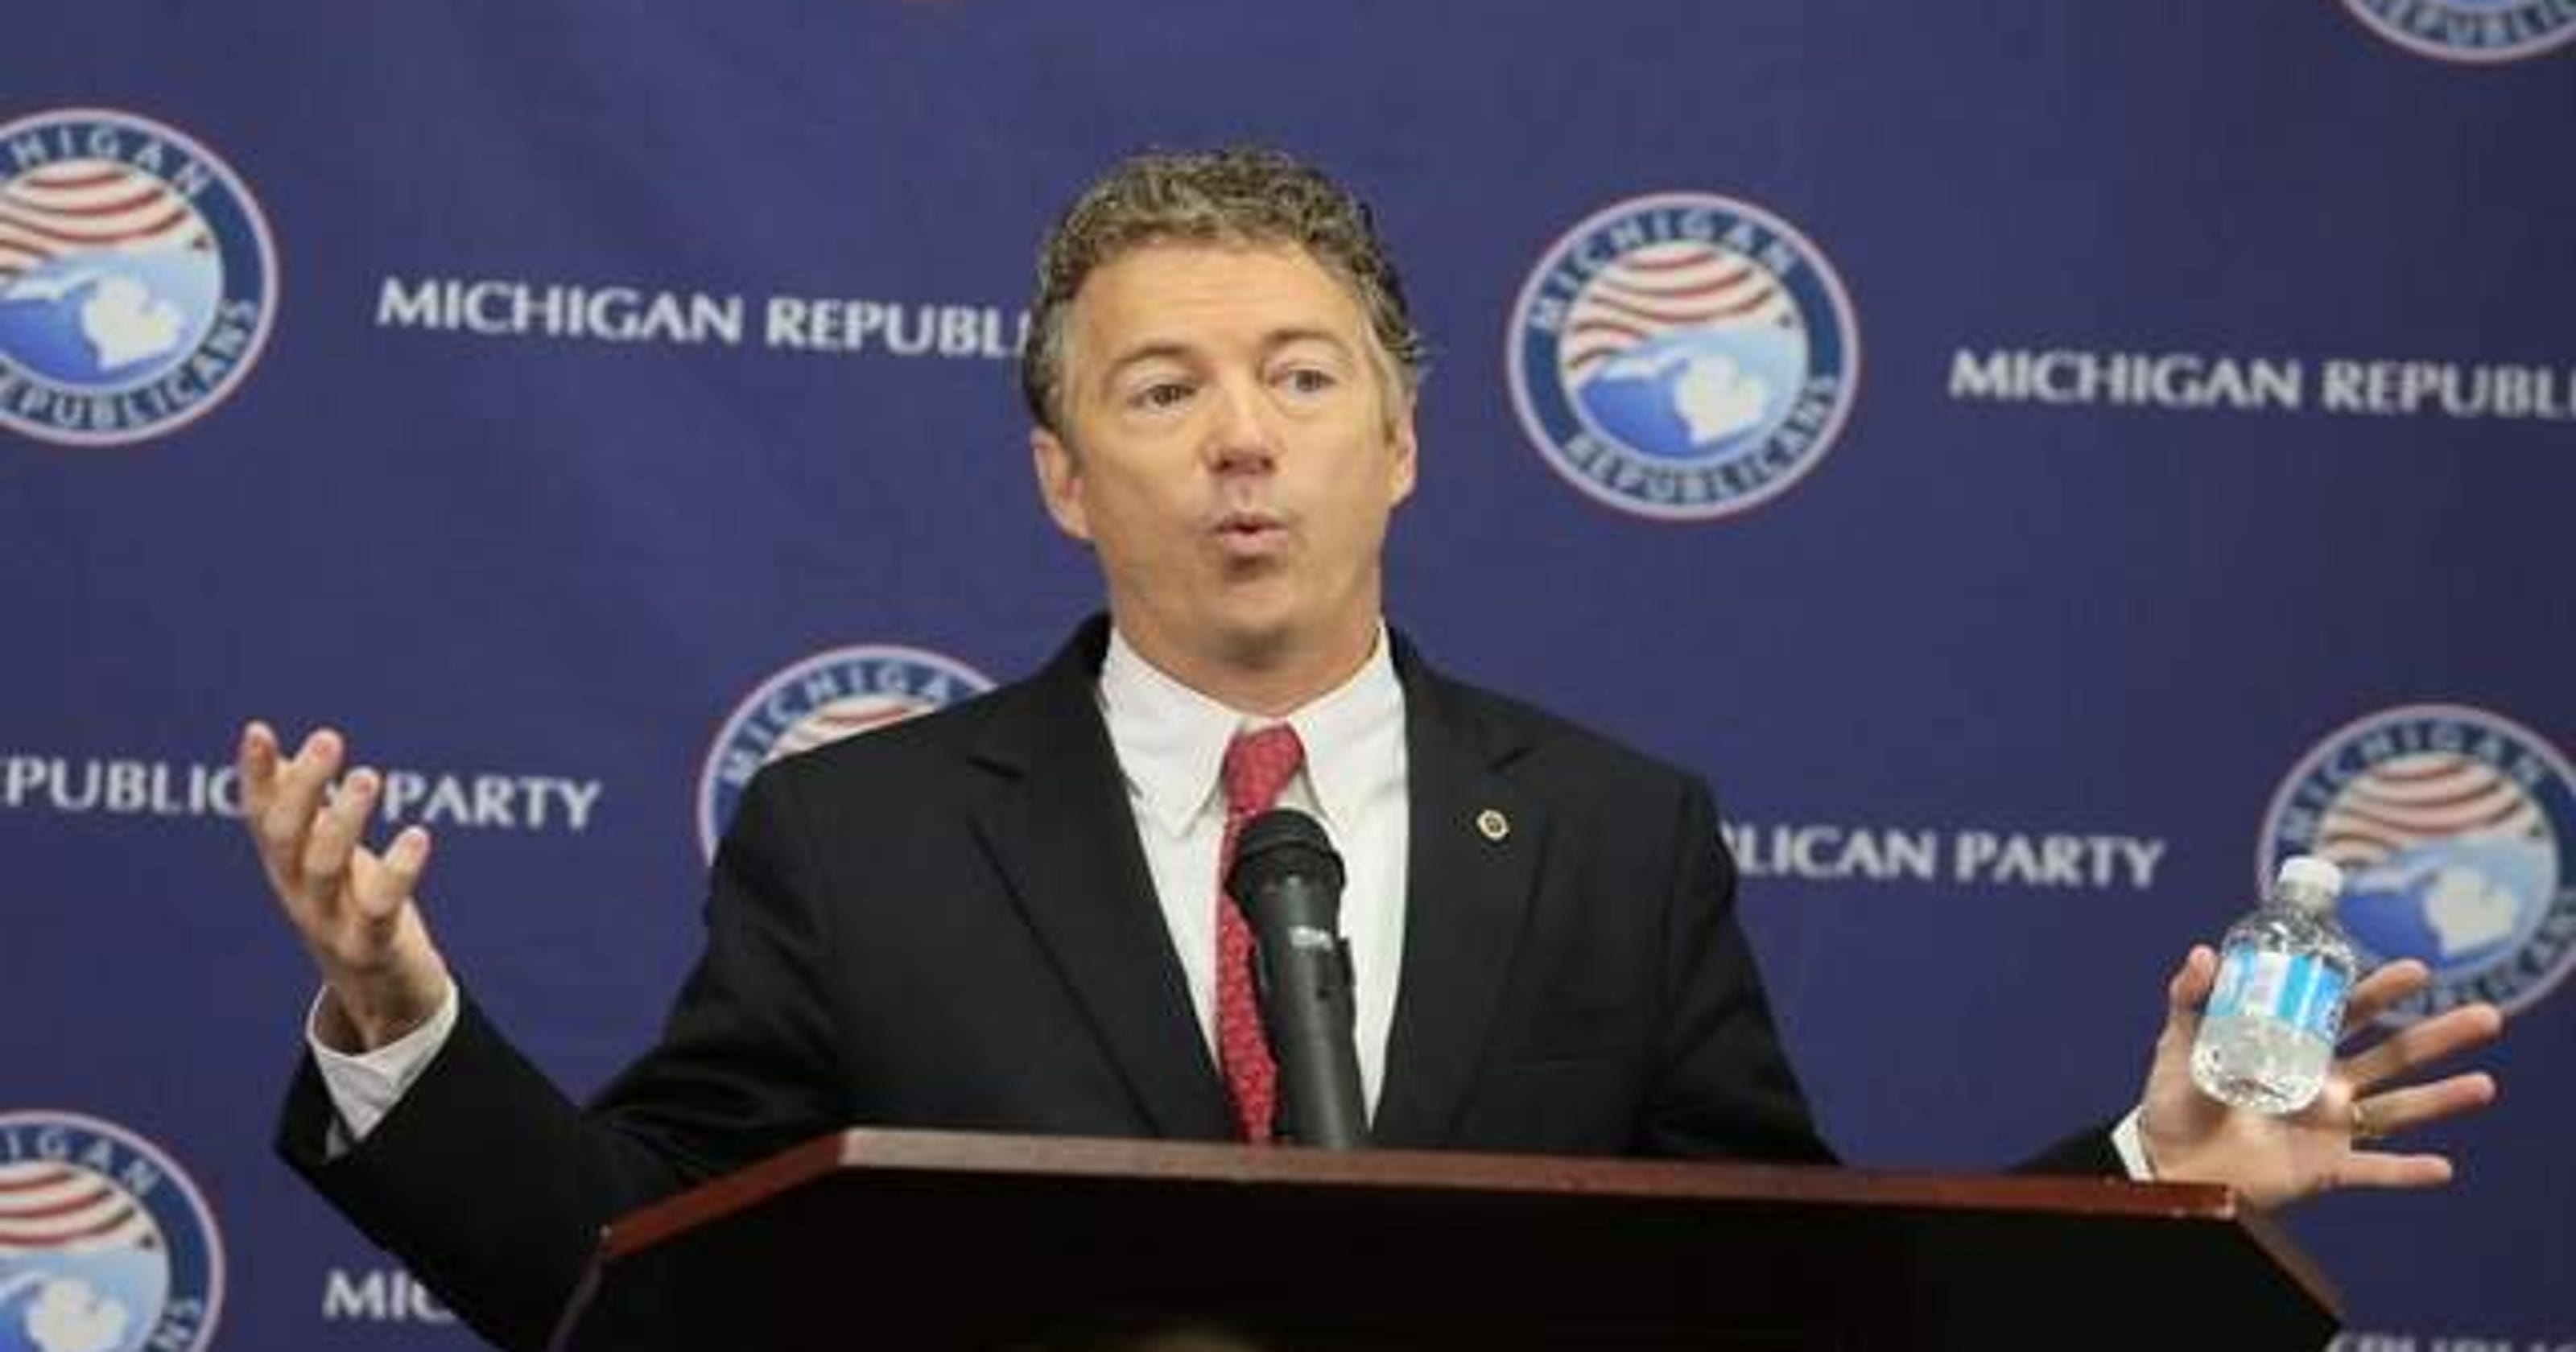 Rand Paul also a winner in Tuesday's election